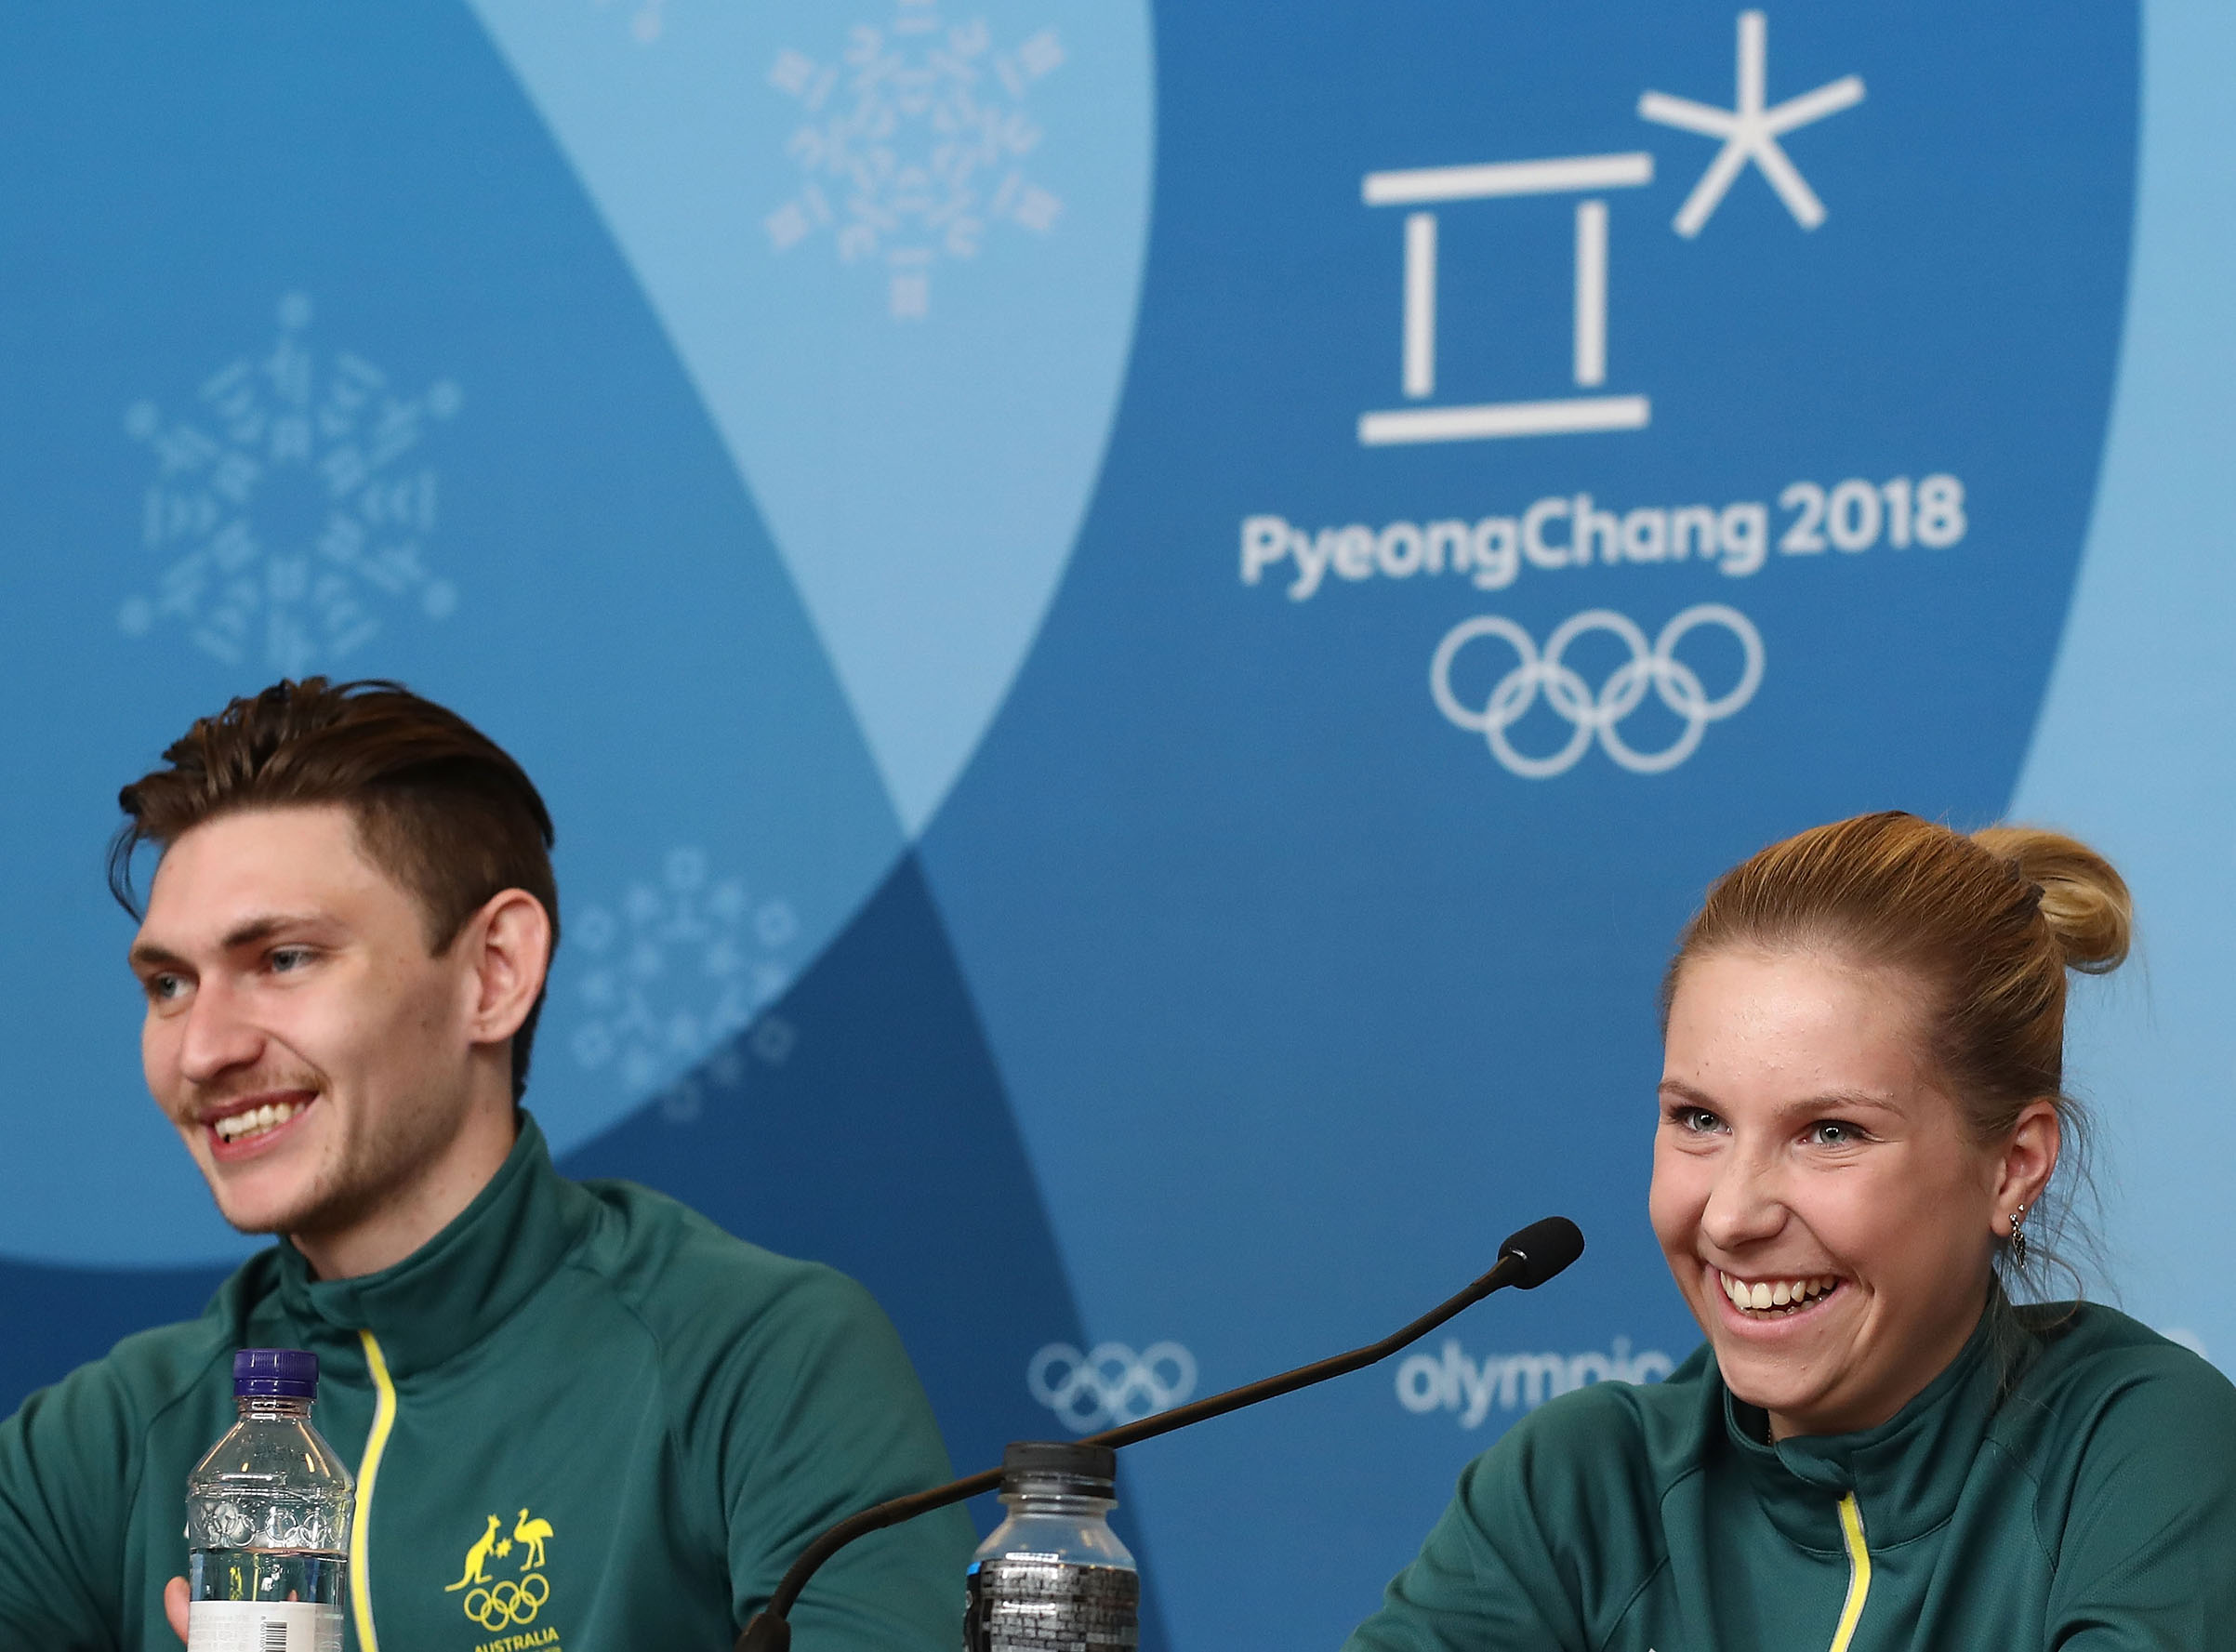 Australian Figure Skaters Harley Windsor and Ekaterina Alexandrovskaya speak during a press conference ahead of the PyeongChang 2018 Winter Olympic Games at Alpensia Ski Resort in Pyeongchang-gun, South Korea, on Feb. 8, 2018.